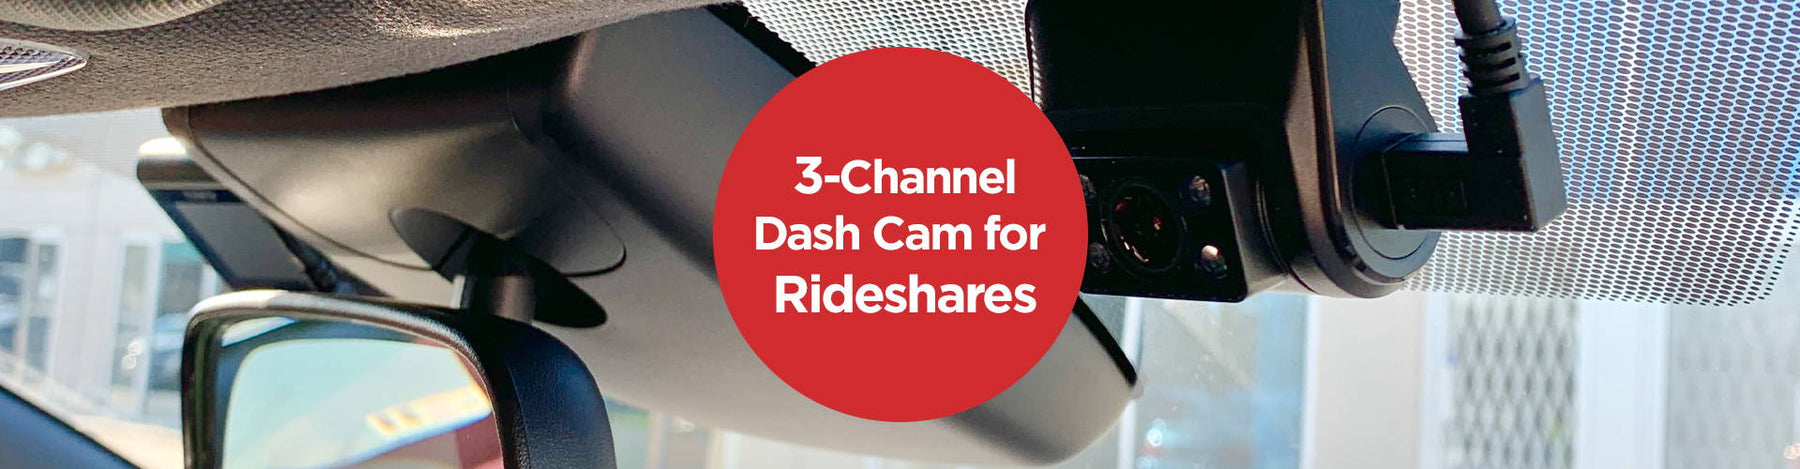 3-Channel Complete Coverage for Rideshares